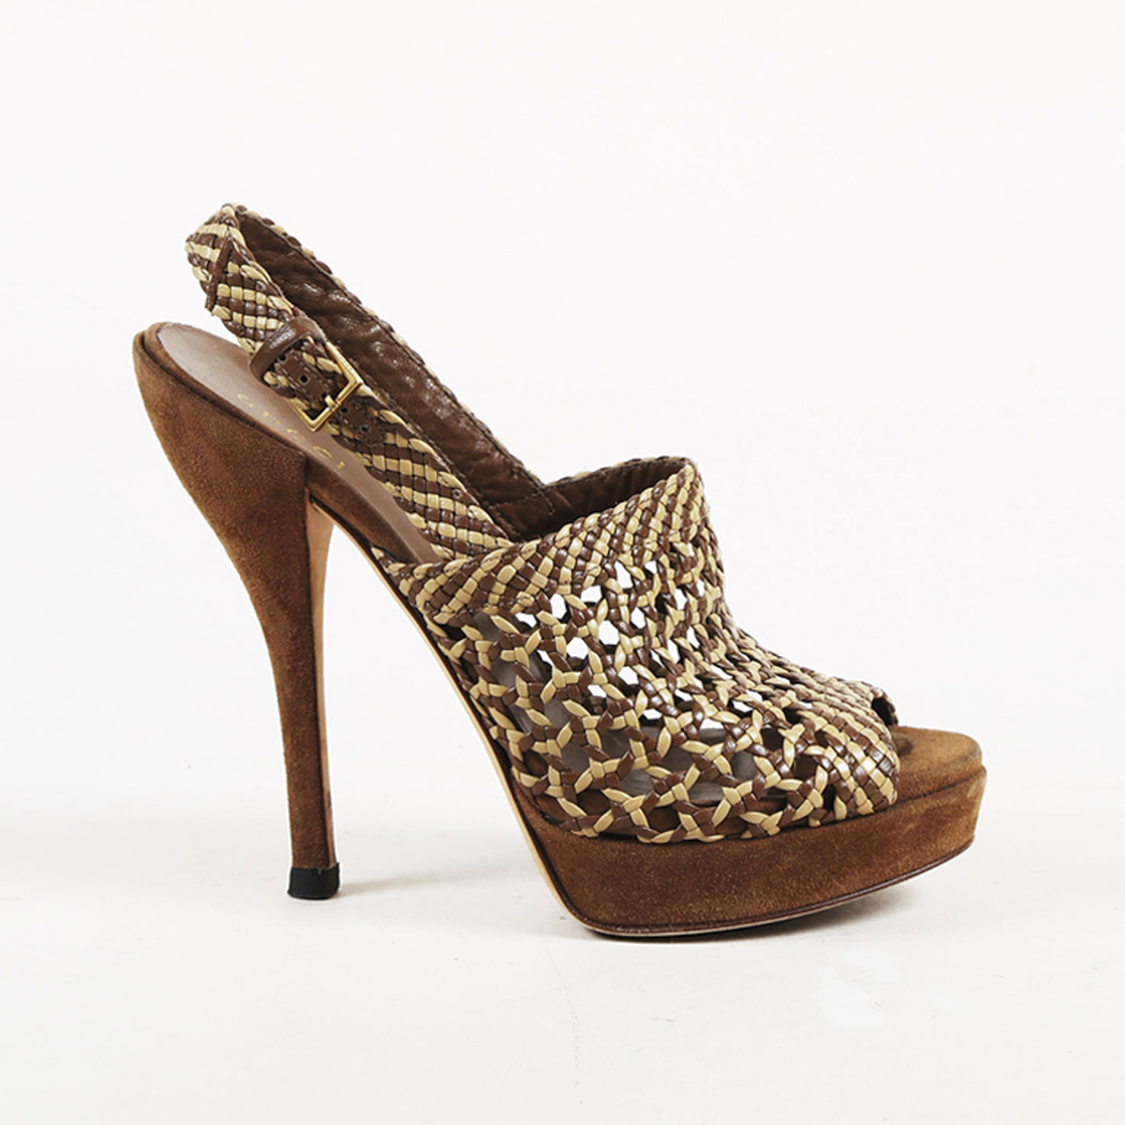 24052ada6846 Details about Gucci Brown   Beige Woven Leather   Suede Slingback Sandals  SZ 36